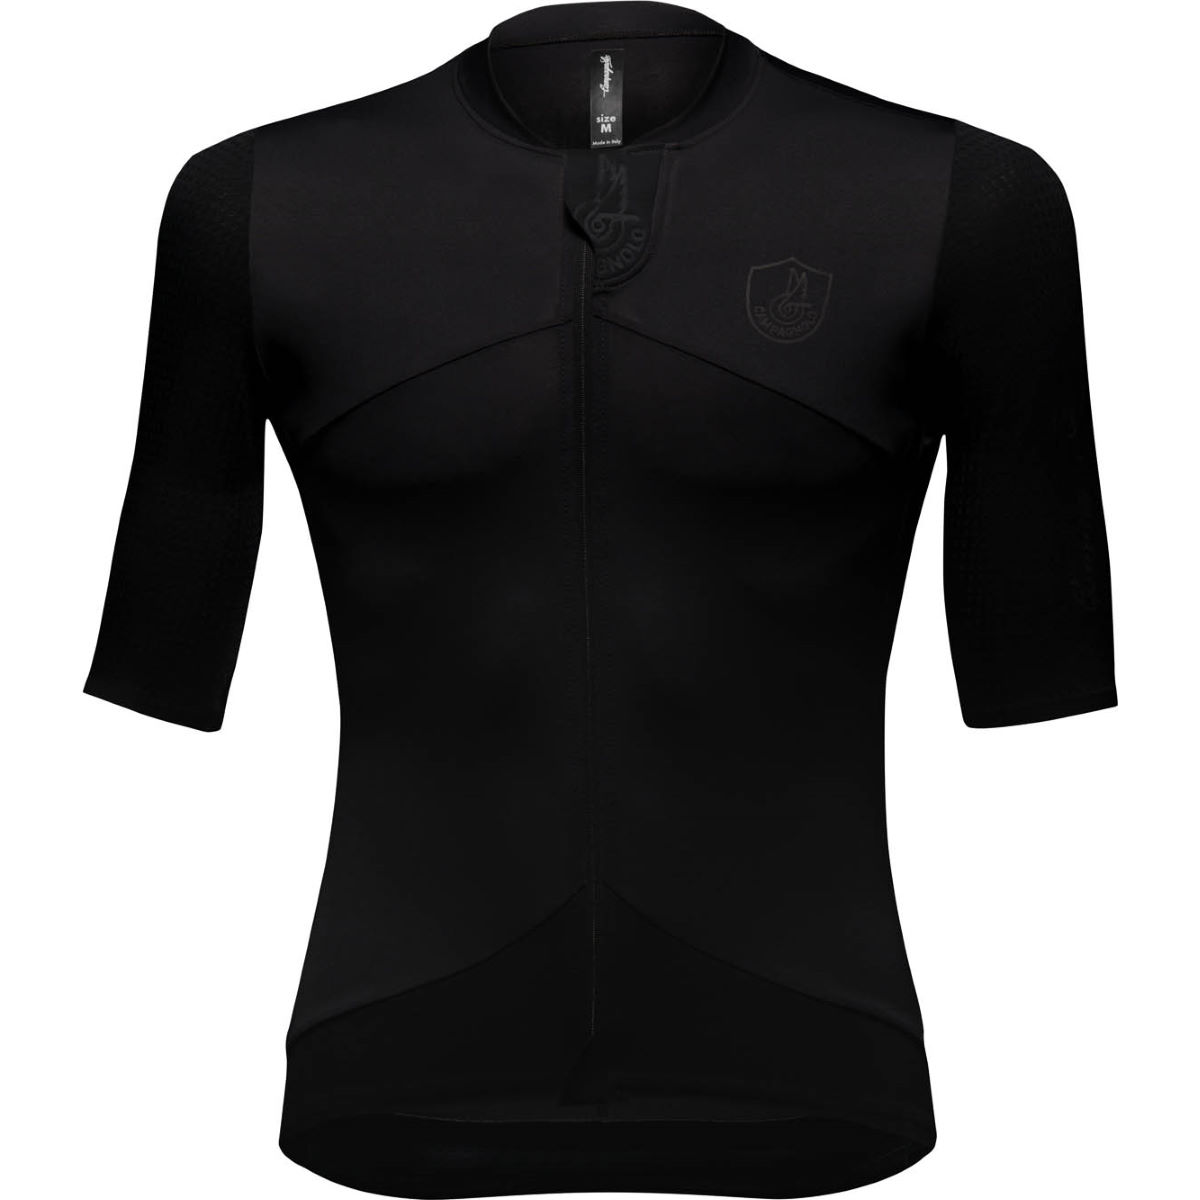 Campagnolo C-Tech Jersey - L Black | Short Sleeve Cycling Jerseys